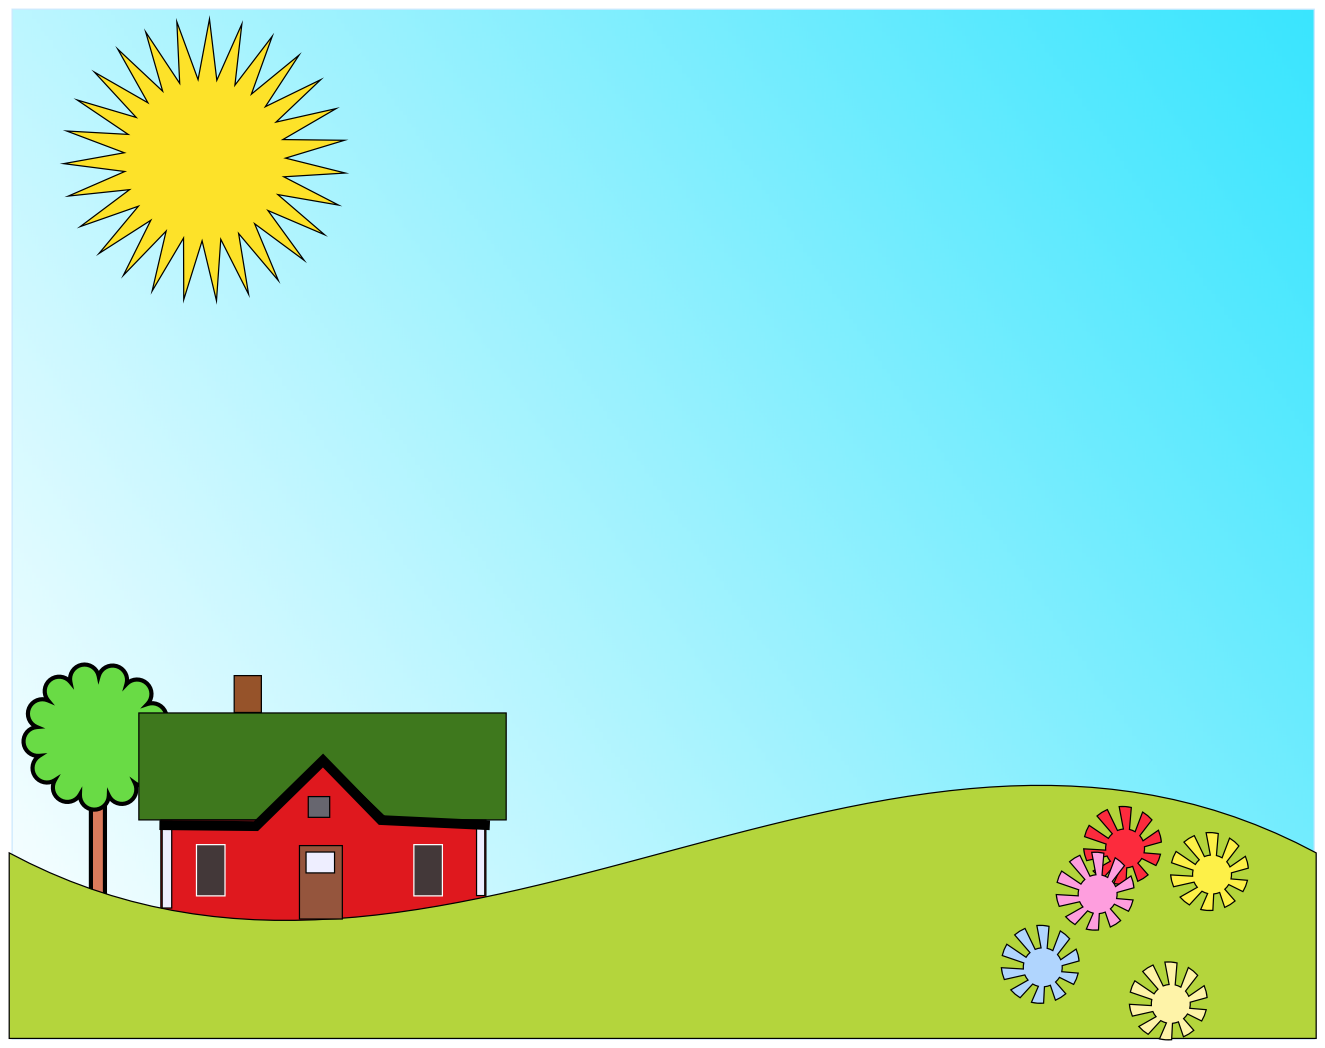 Png Sunny Day Cartoon 1920 X 1080 114 Kb-Png Sunny Day Cartoon 1920 X 1080 114 Kb Jpeg Sunny Day Cartoon 600 X-10